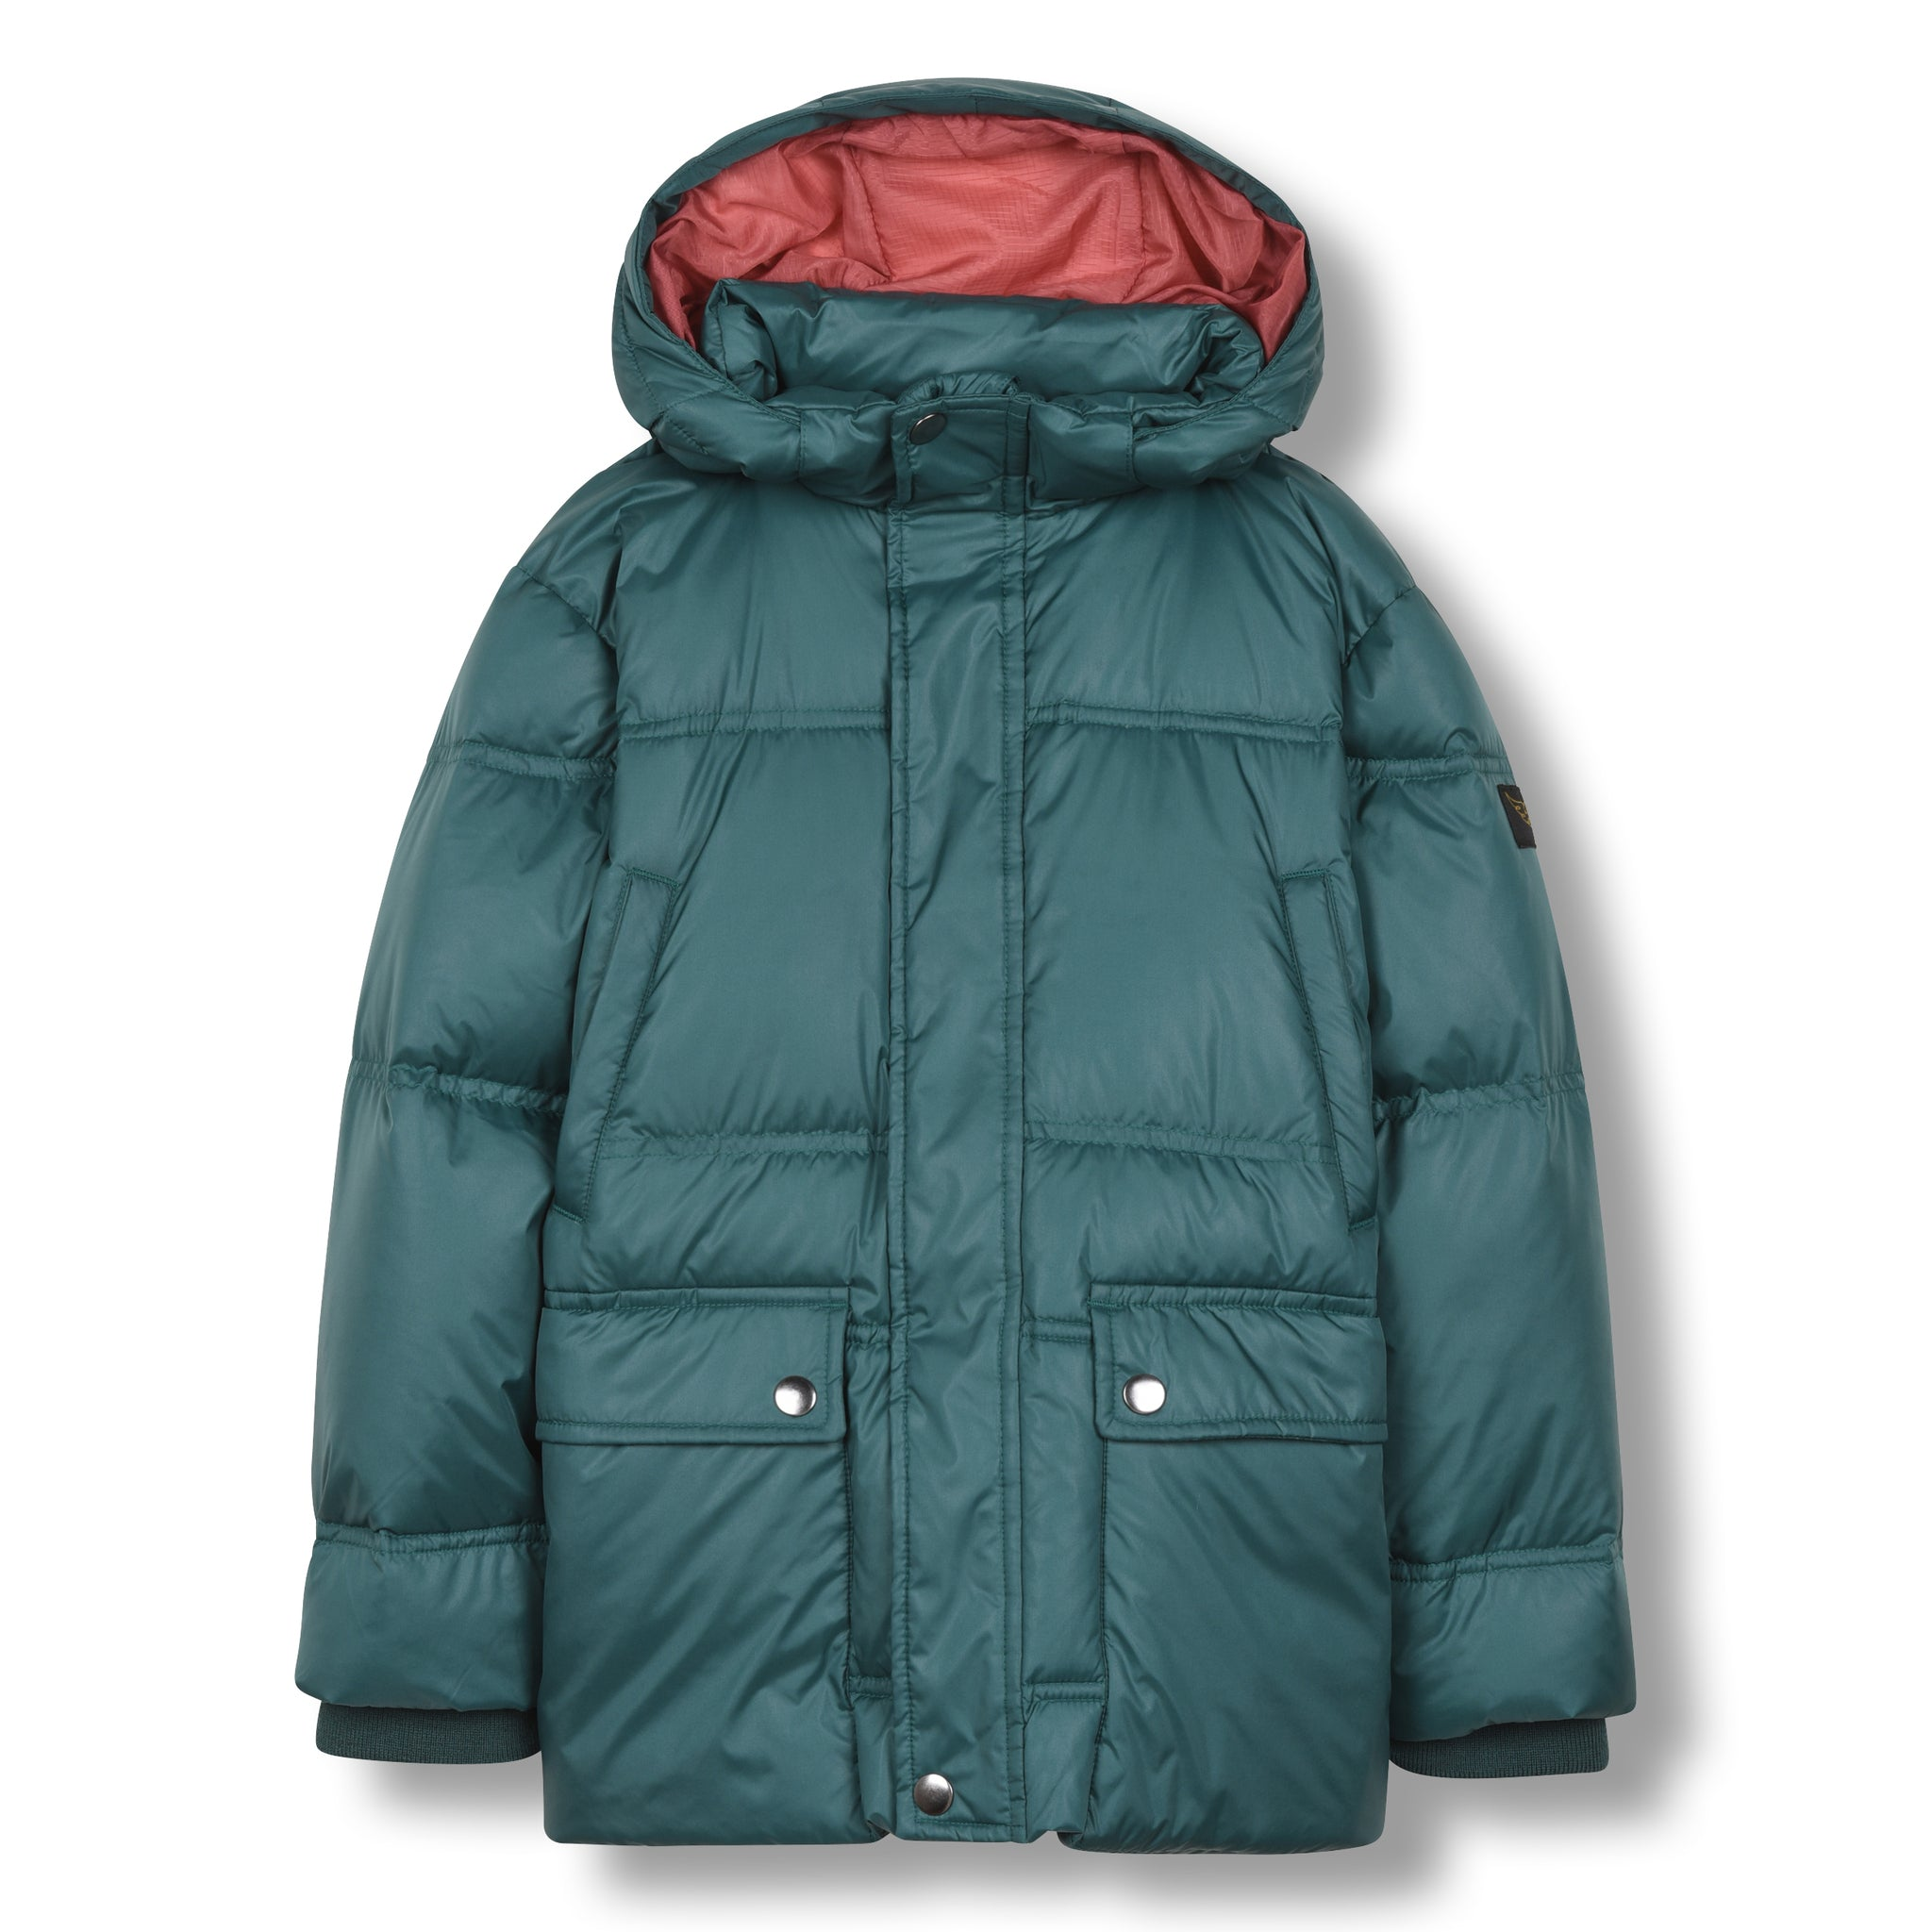 SNOWCAMP University Green - Zipped Down Parka 1